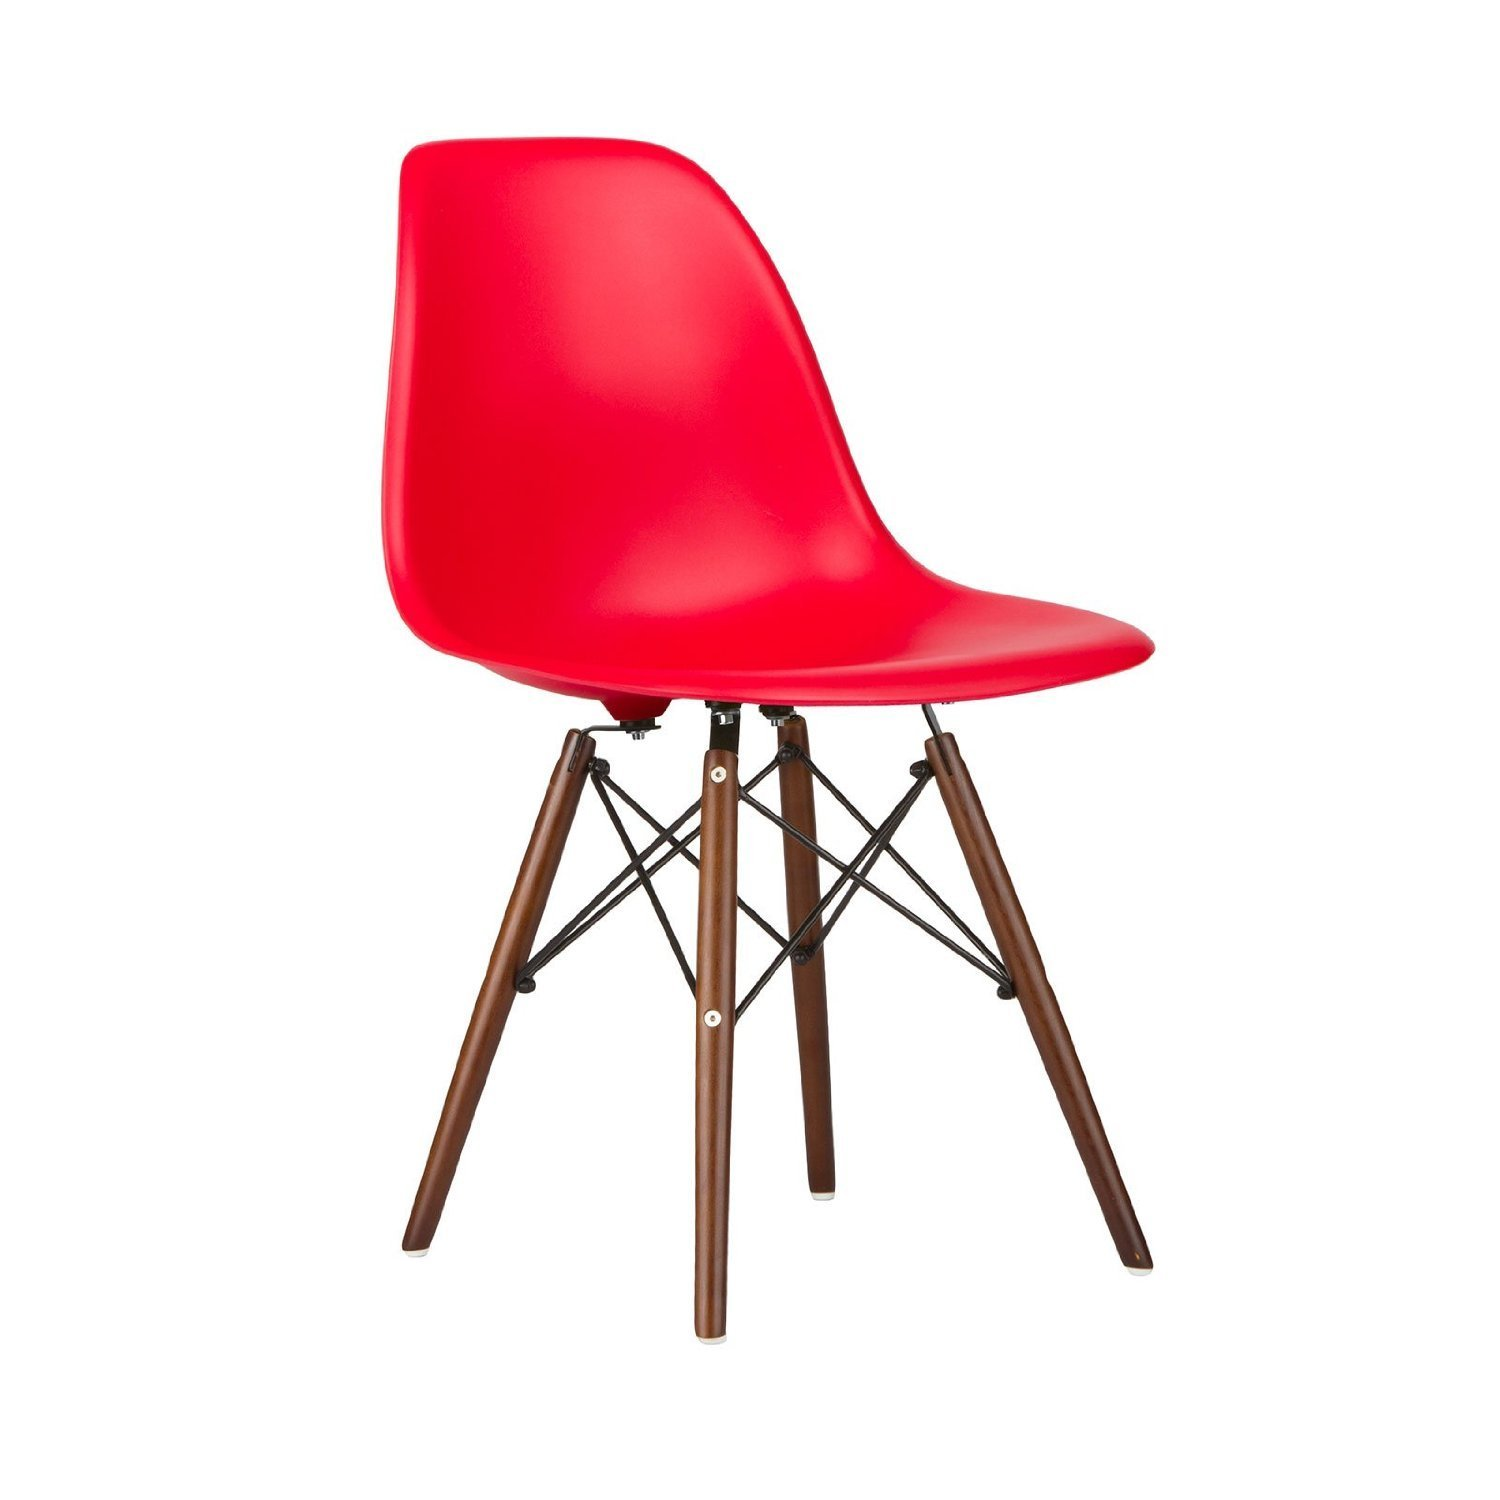 Nicer Furniture ™ Set of Four (4) Black - Eames Style Side Chair with Walnut Wood Legs Eiffel Dining Room Chair - Lounge Chair with No Arm Arms Armless Chairs Seats Wooden Wood Dowel Leg - Eiffel Legged Base Molded Plastic Seat Shell Top - Paris Tower Side